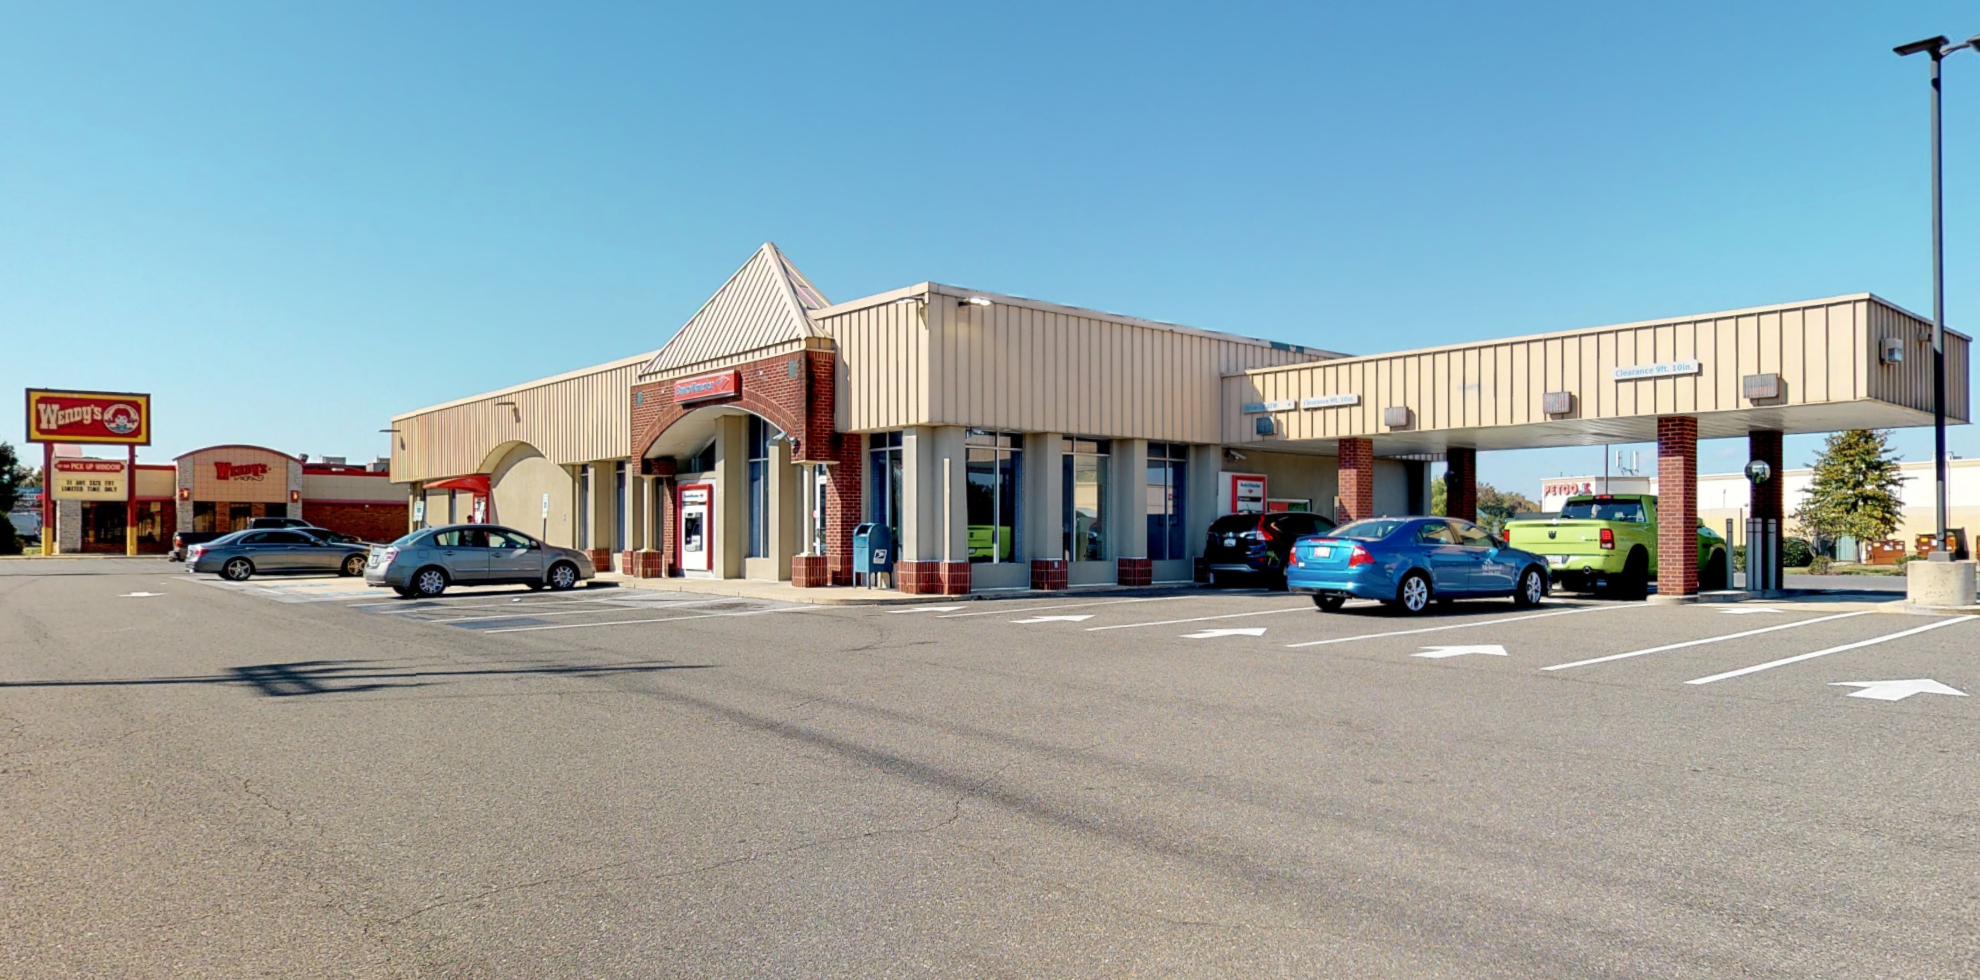 Bank of America financial center with drive-thru ATM   8901 Woodyard Rd, Clinton, MD 20735